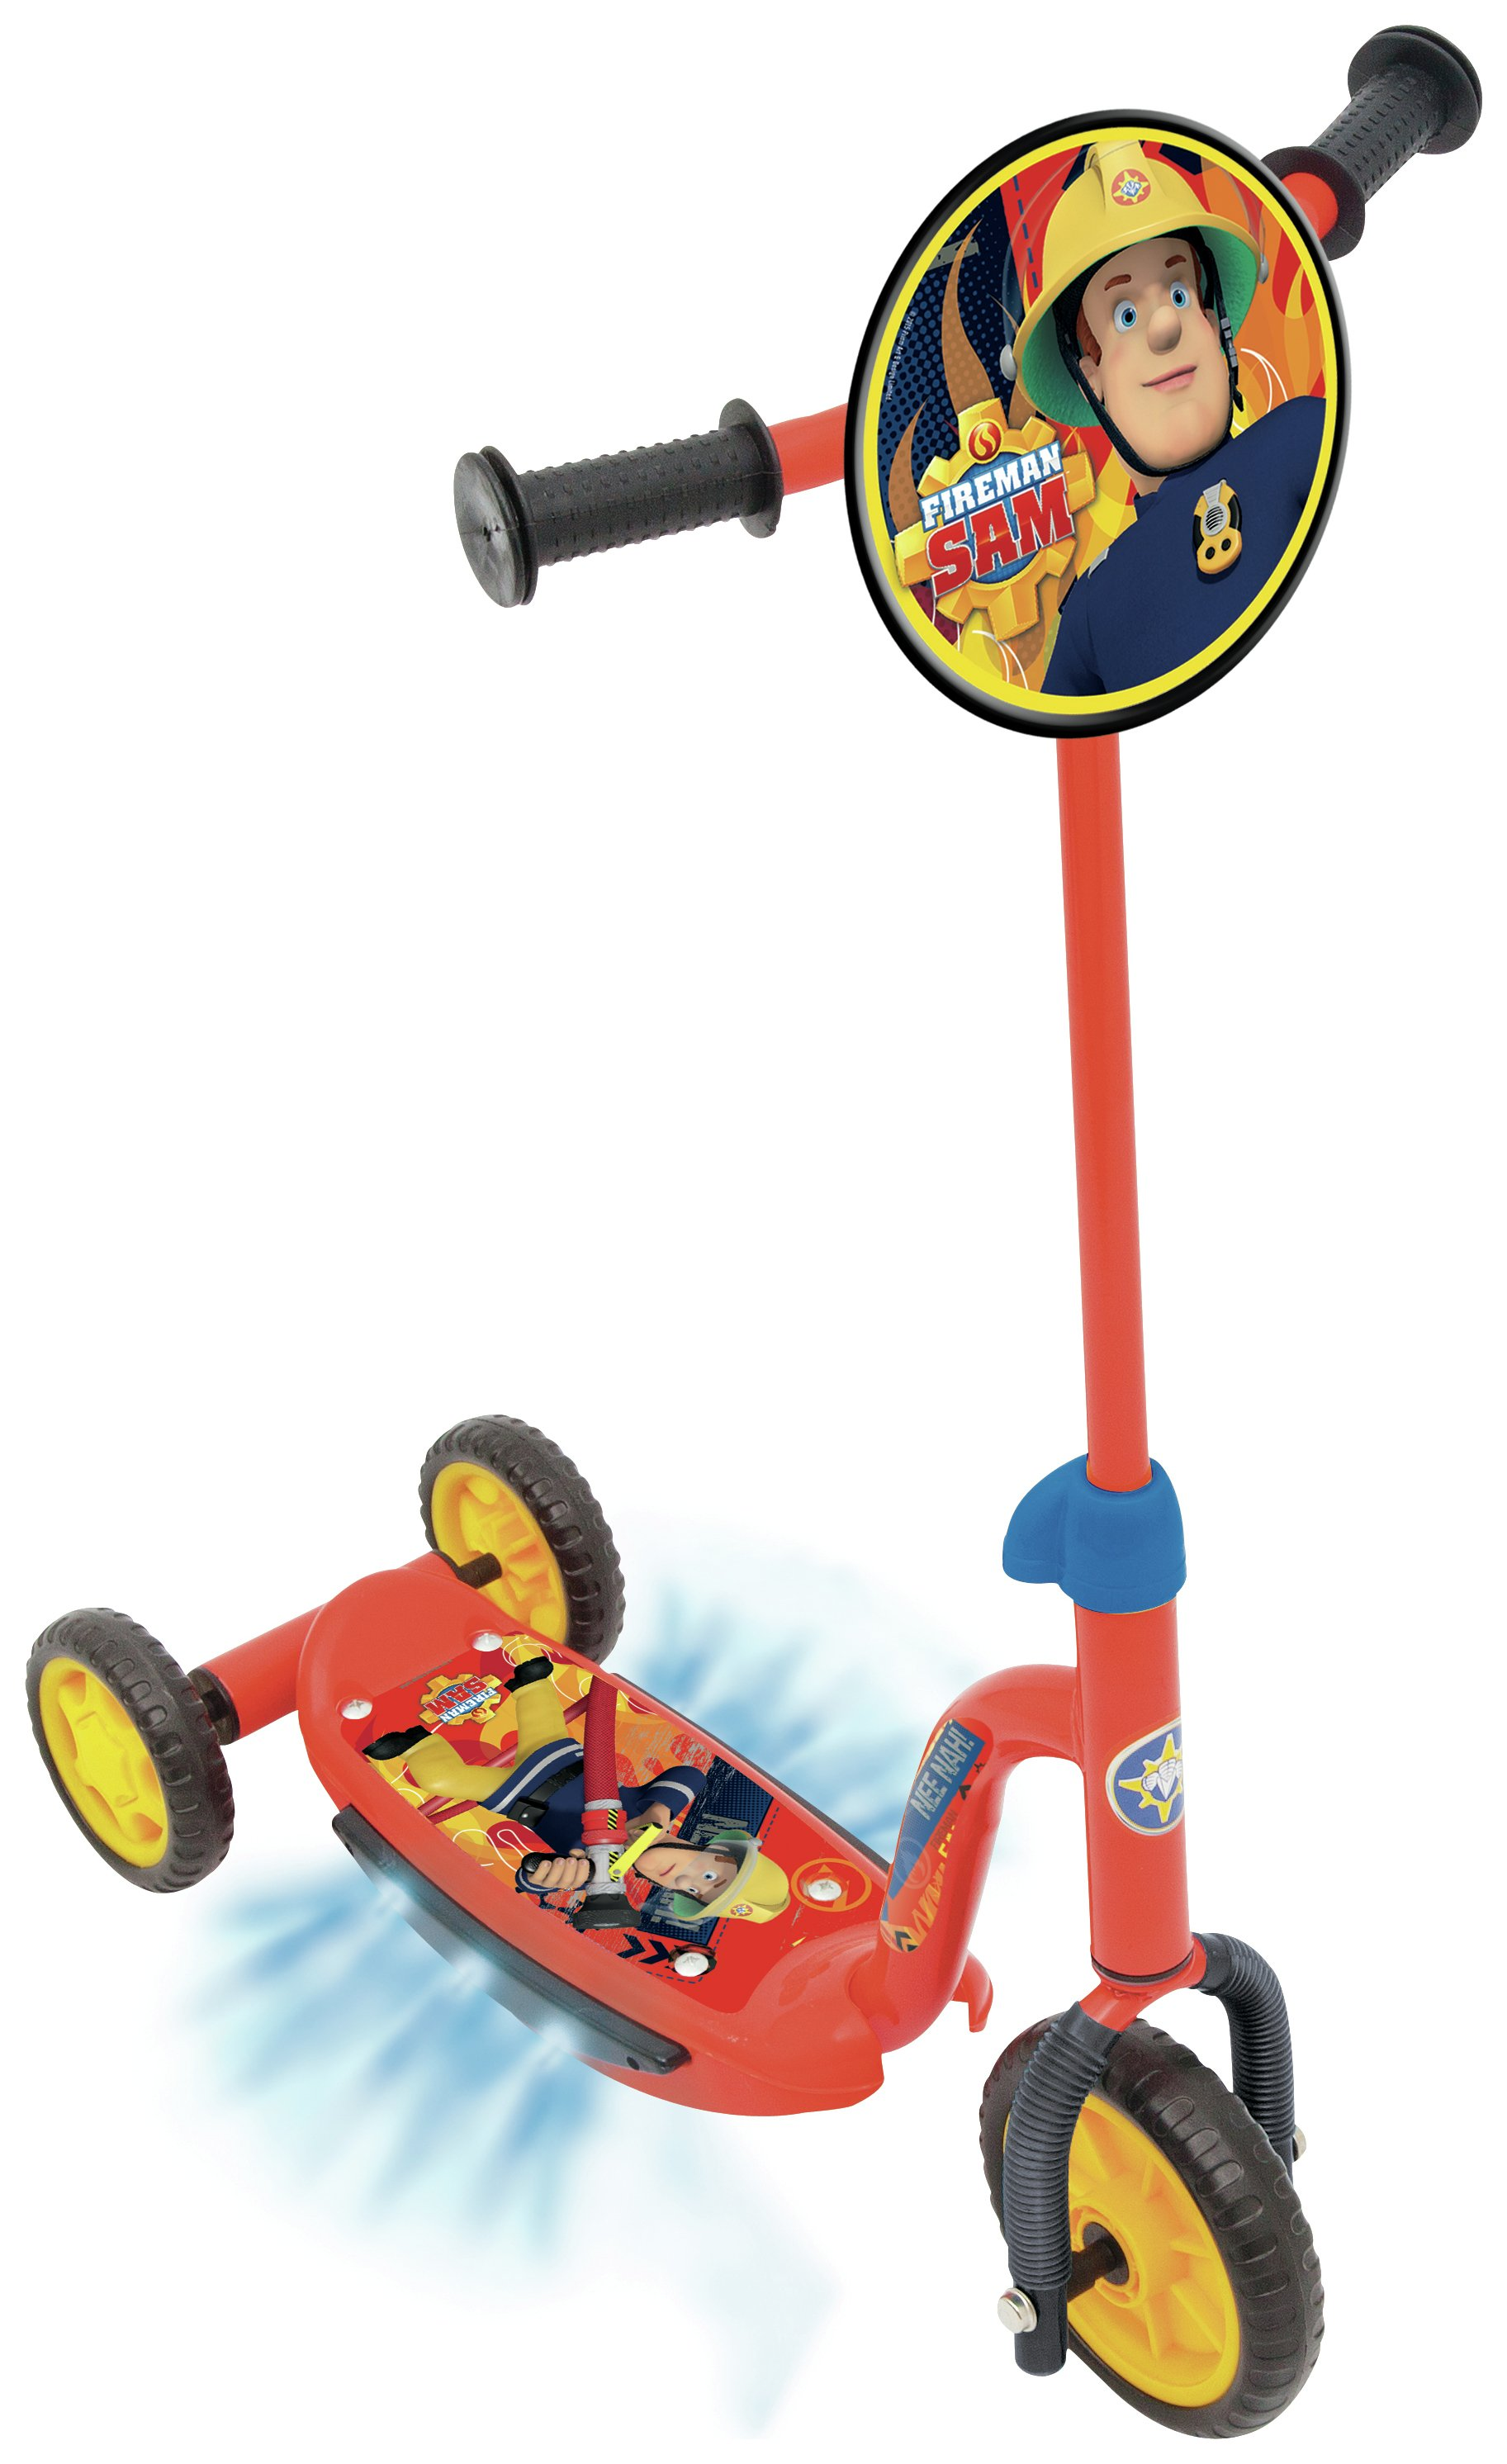 Image of Fireman Sam - Light Up Rescue Tri-Scooter